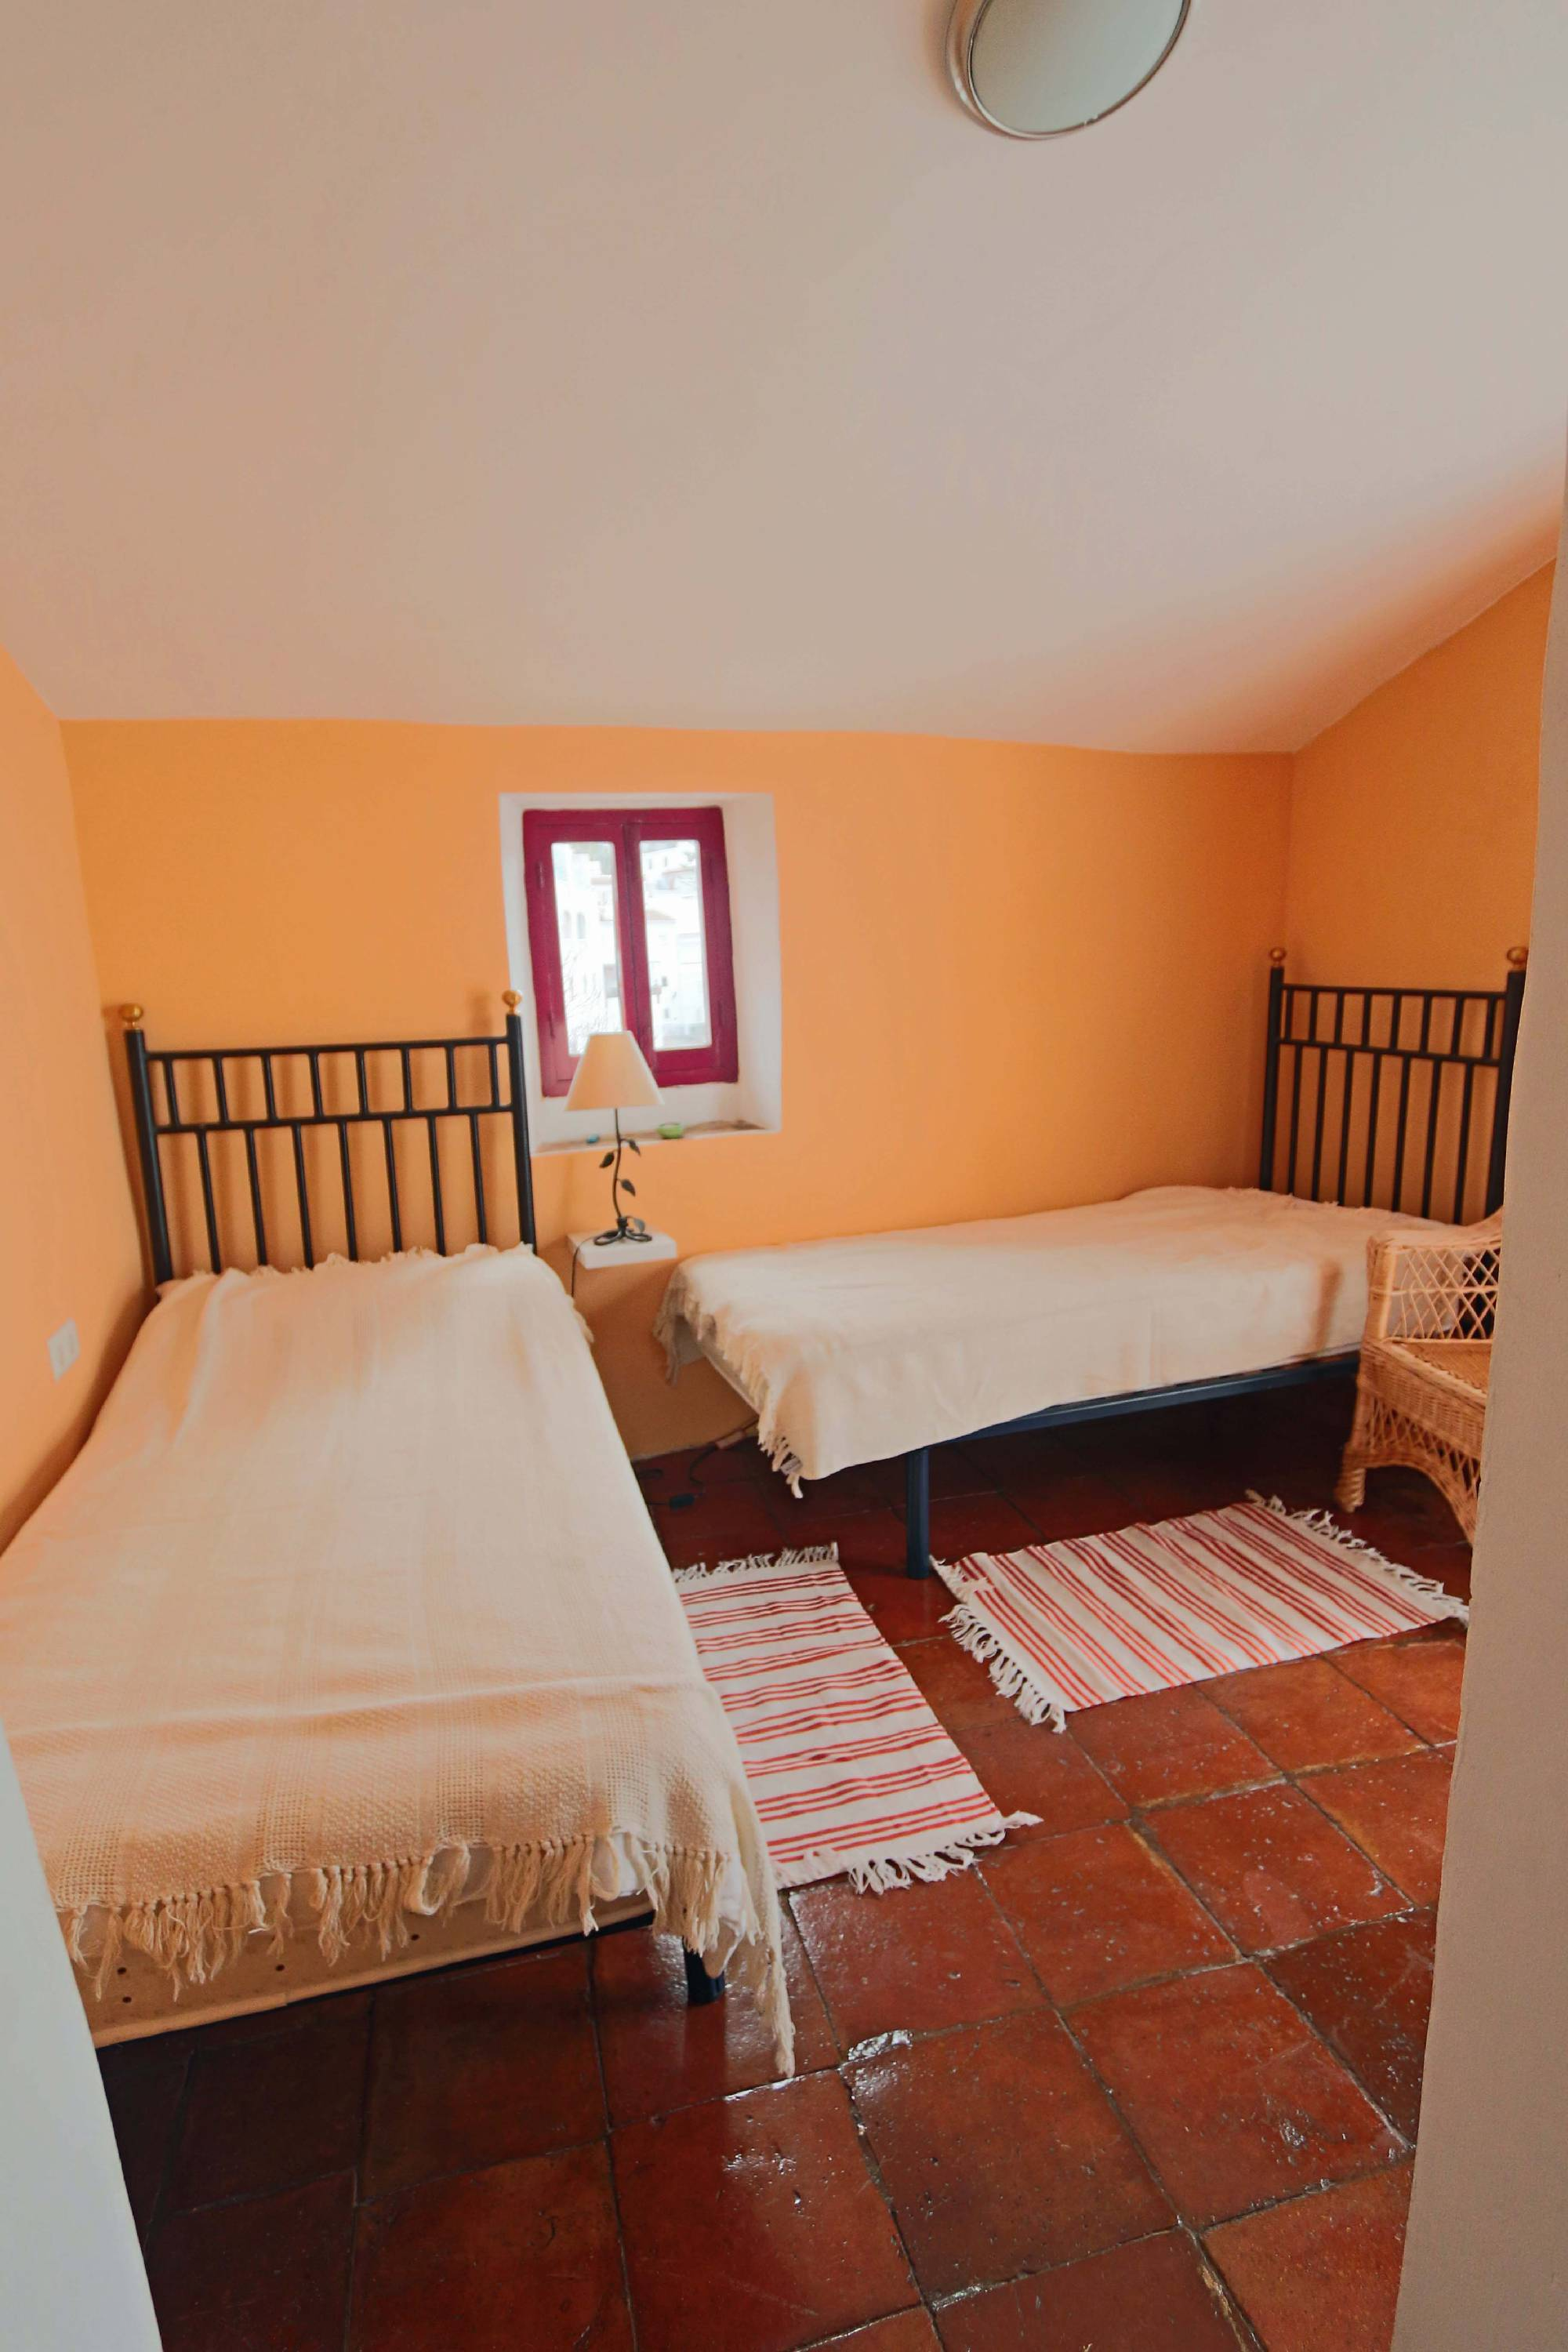 Competa, costa del sol holiday appartament for rent owner direct